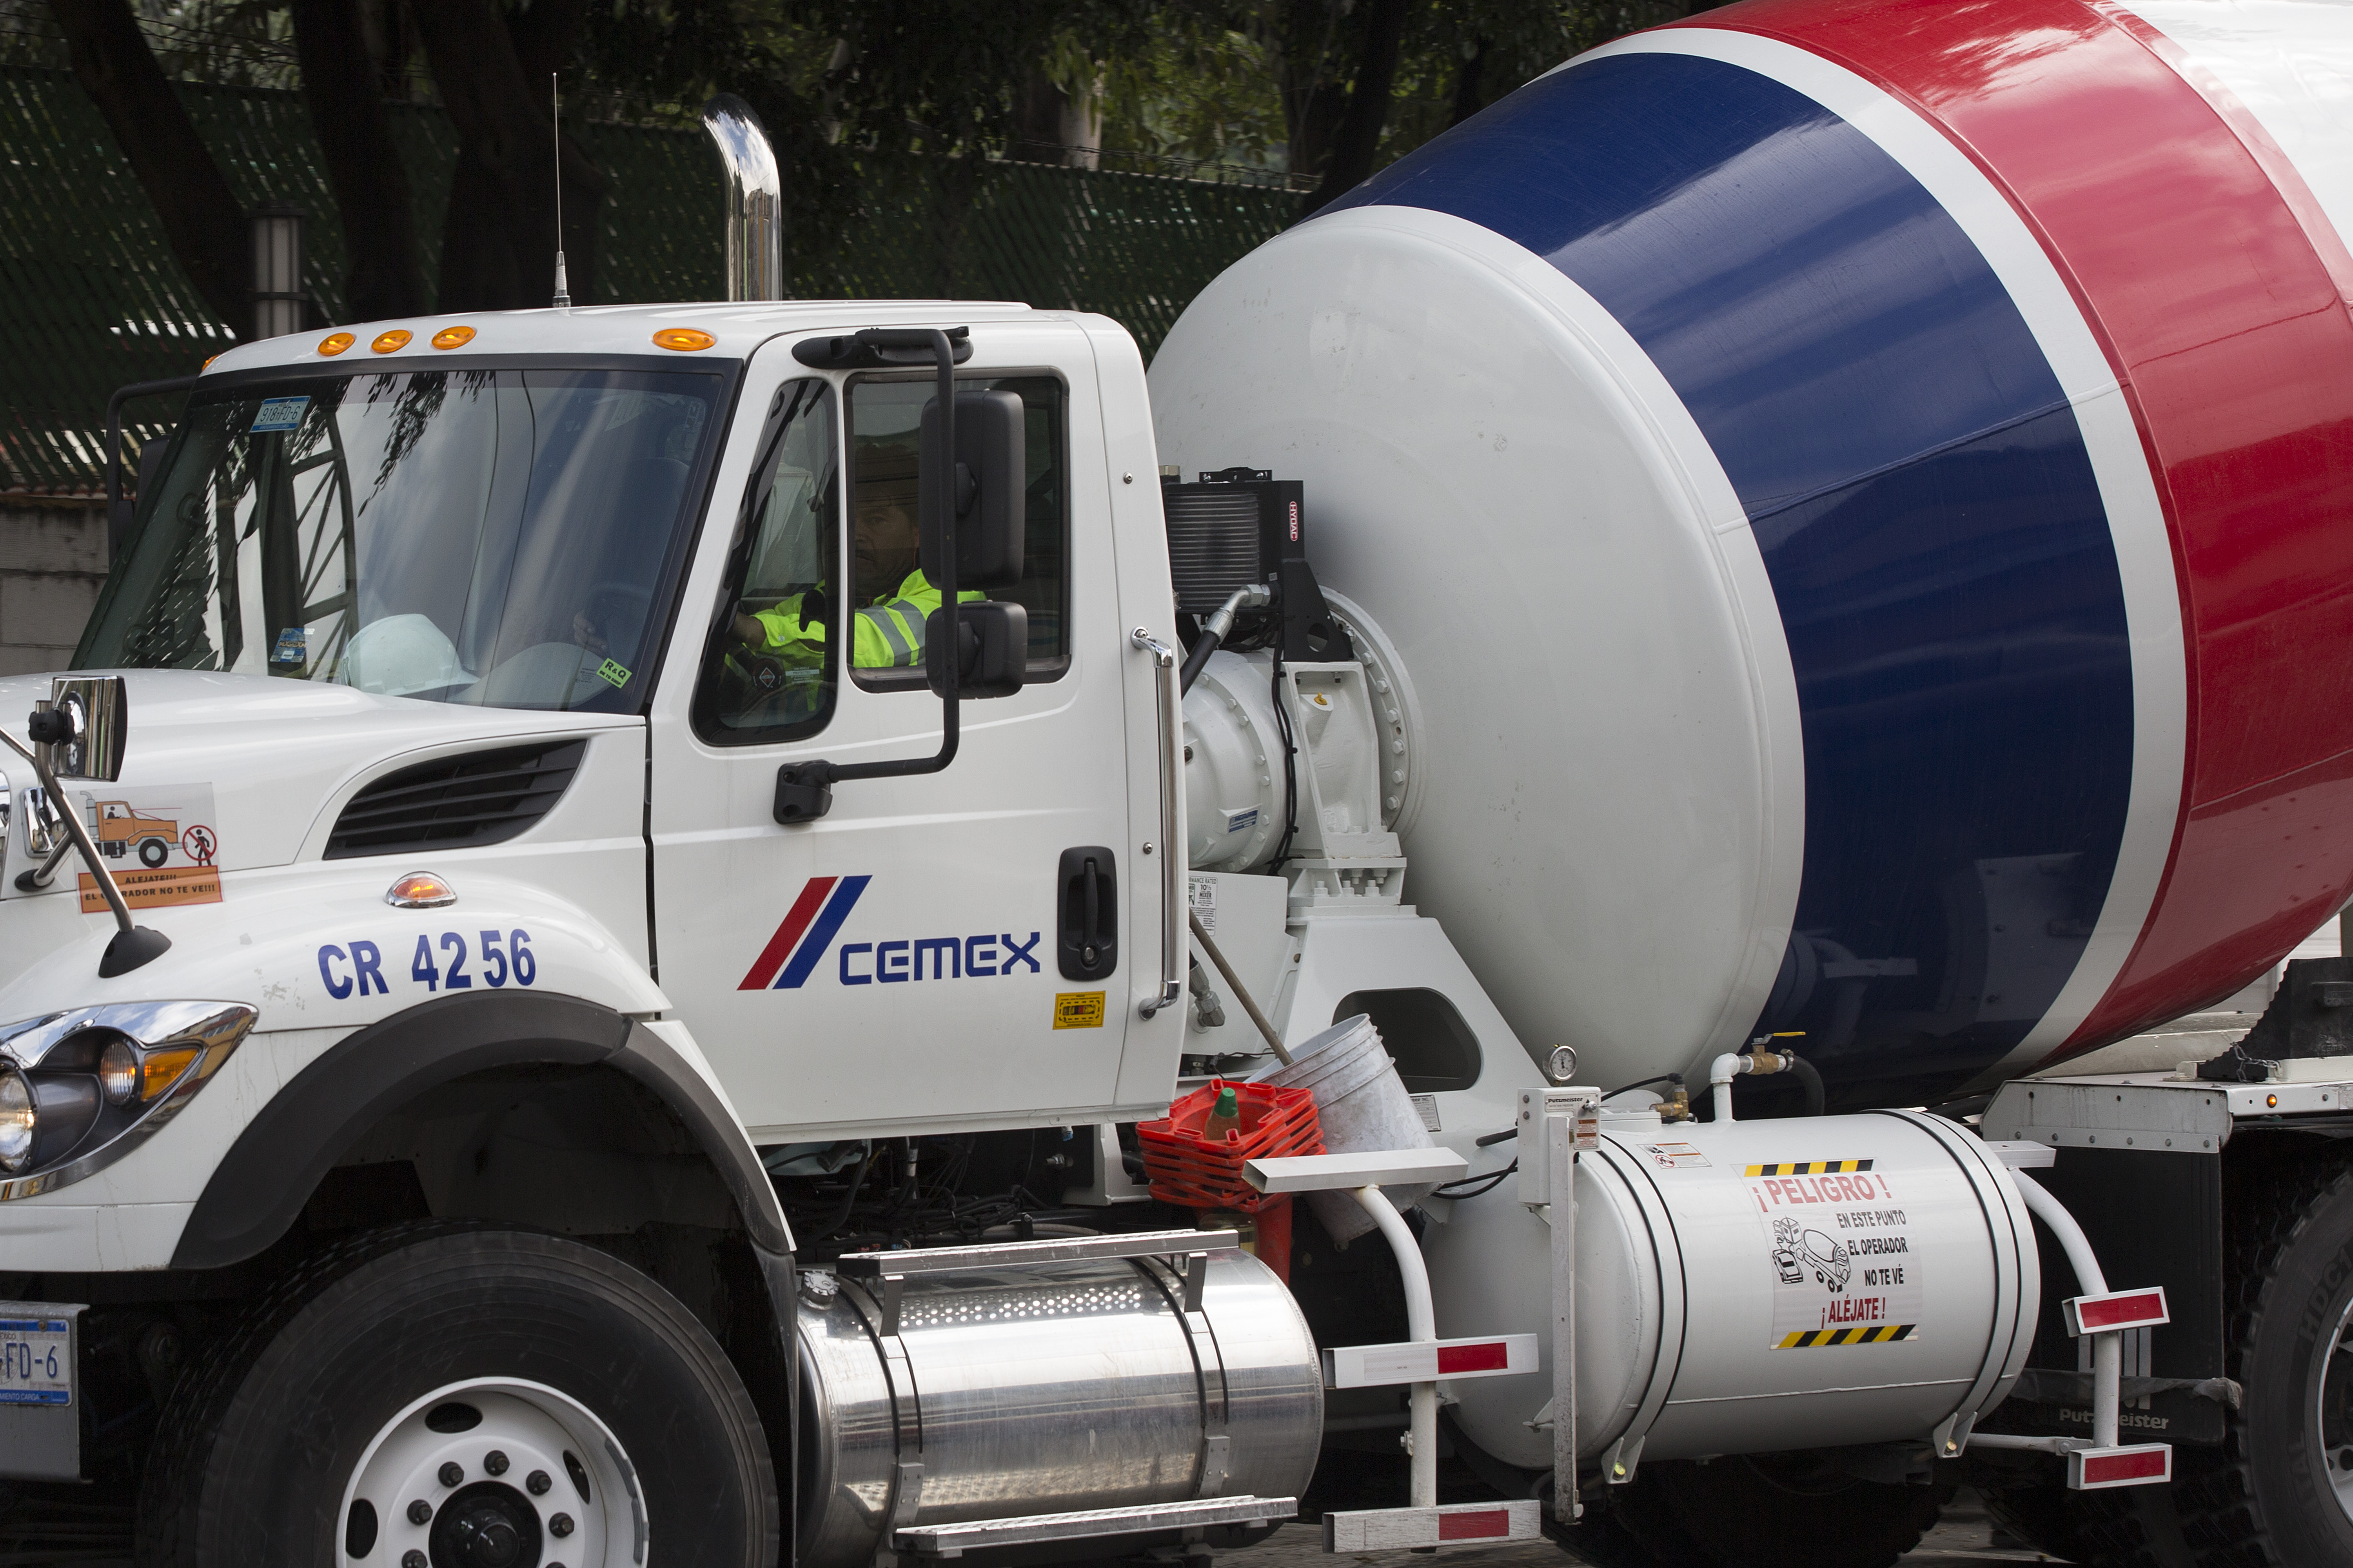 Views Of Cemex Equipment On Construction Sites Ahead Of Earnings Figures